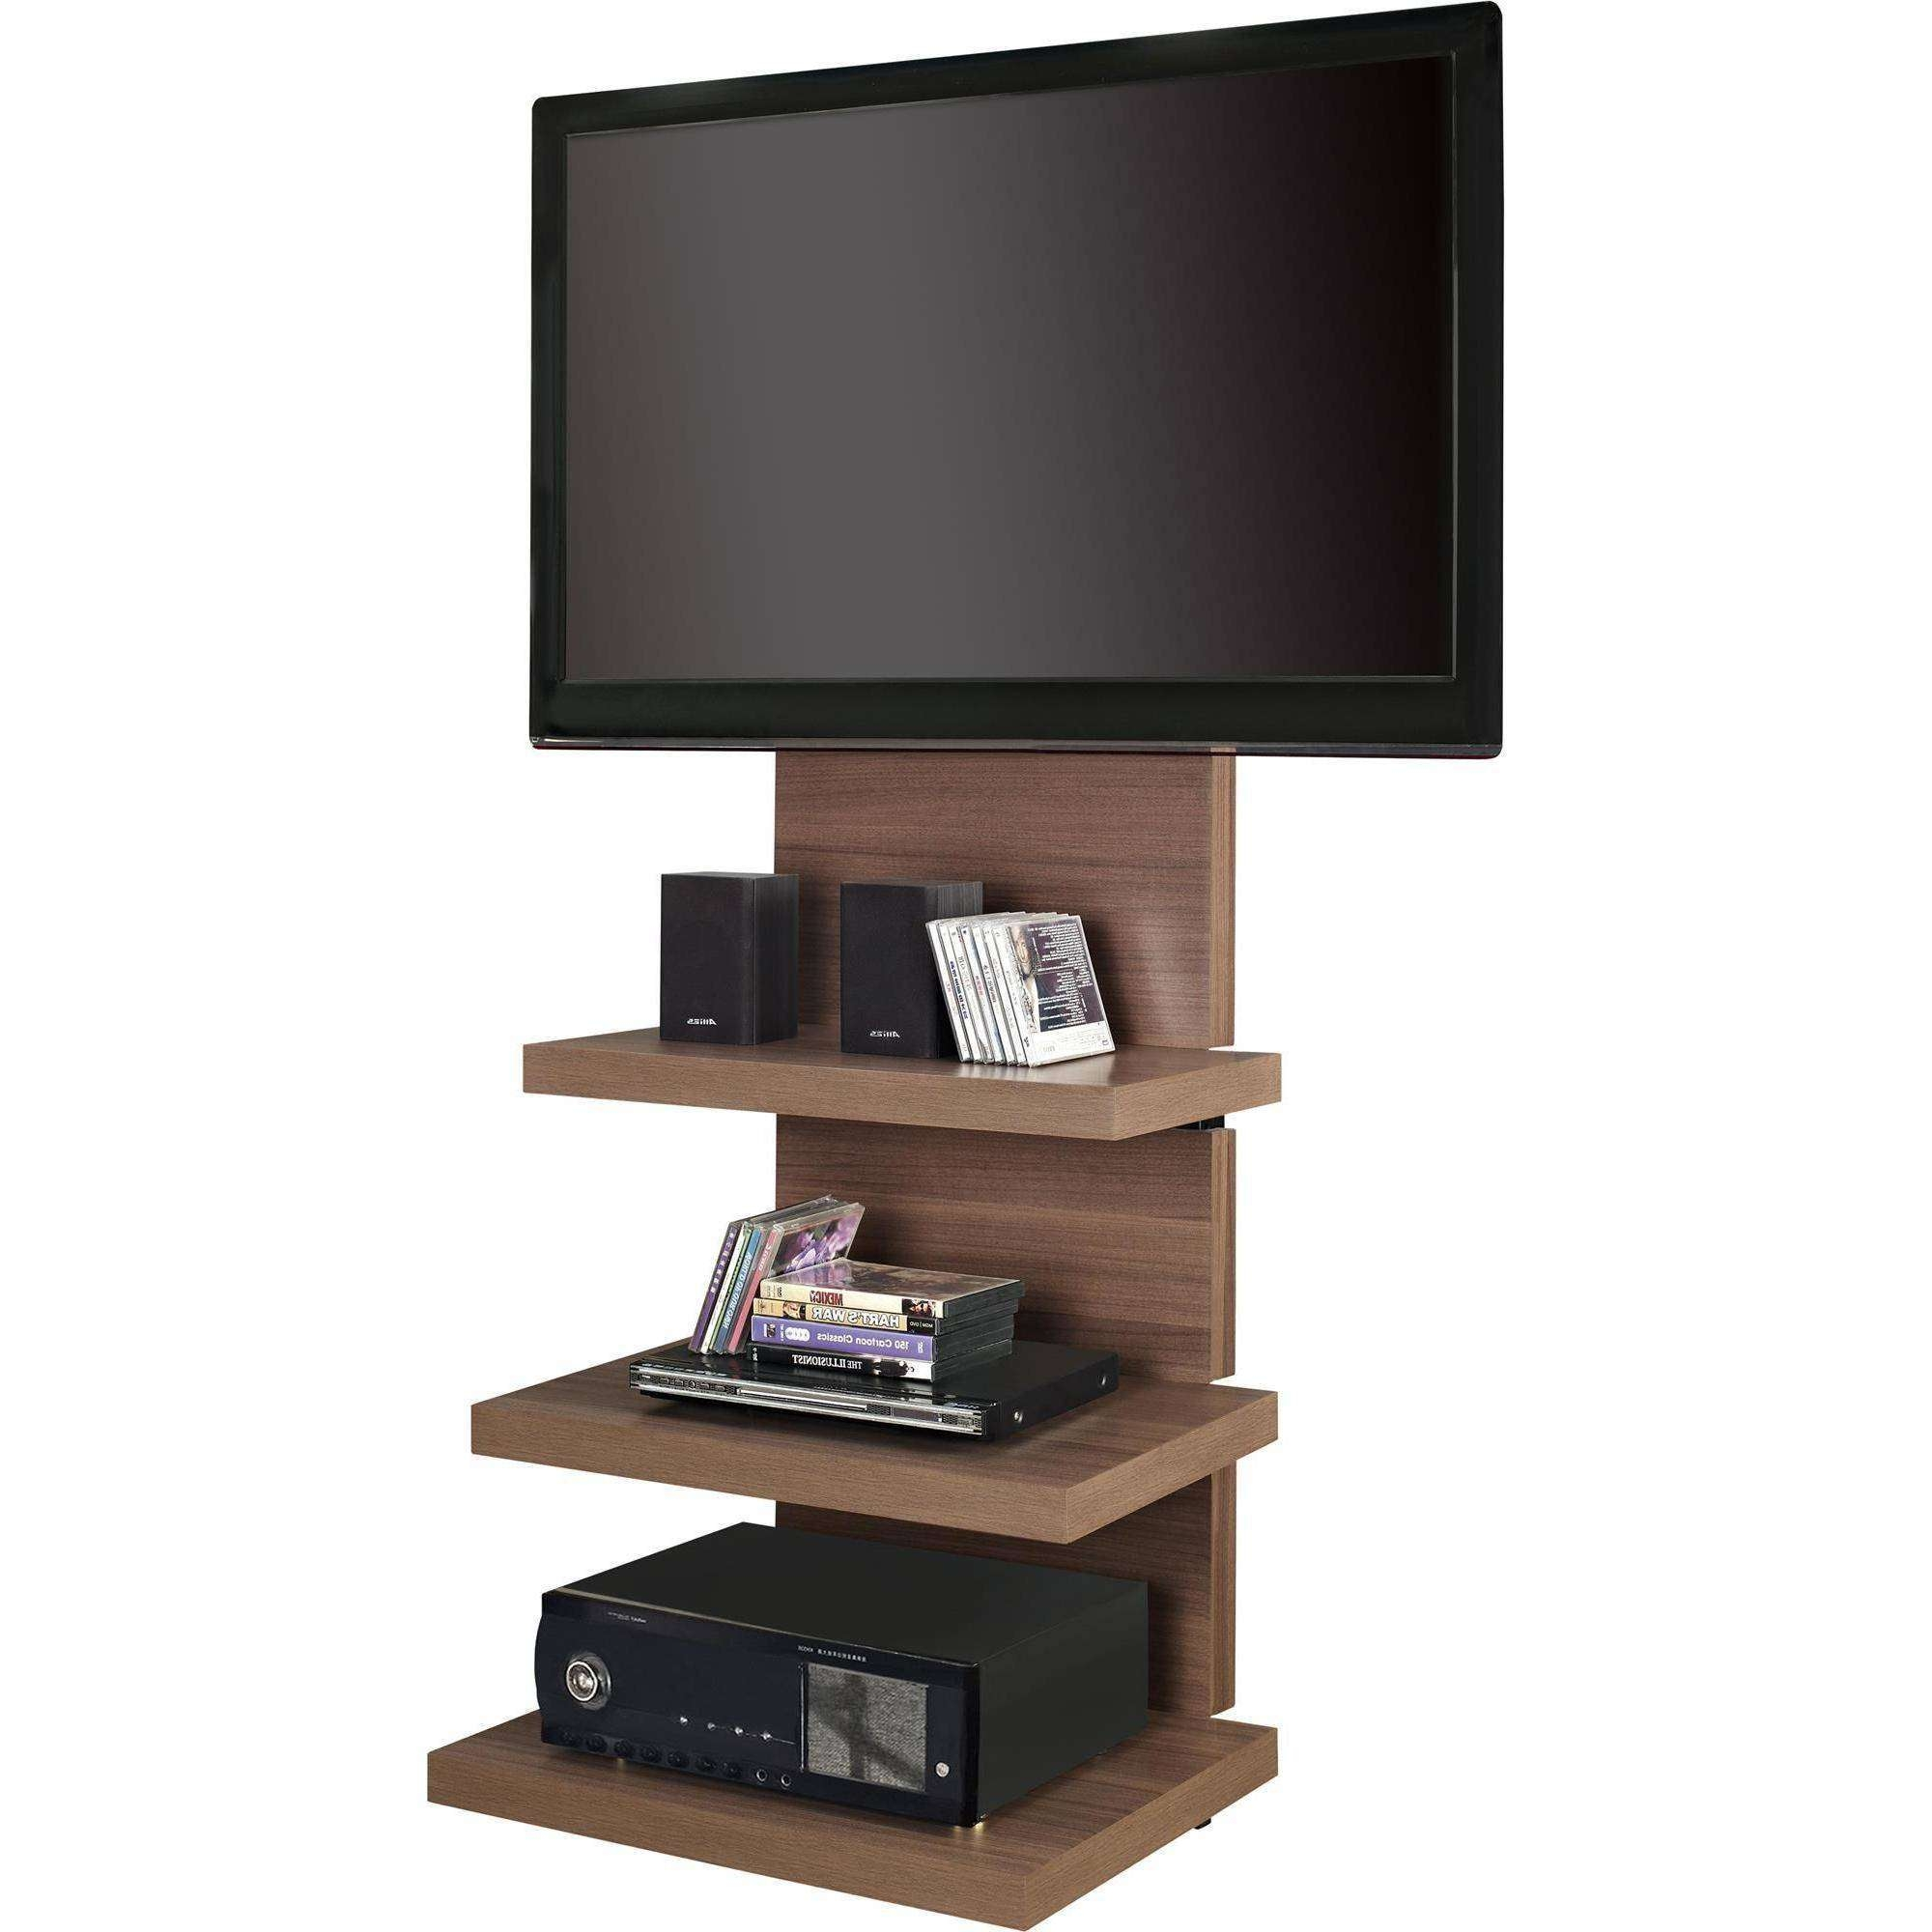 Tv Stand : Da1De92Aaf0E 1 Marvelous Tv Stand With Pictures Design With Cordoba Tv Stands (View 14 of 15)